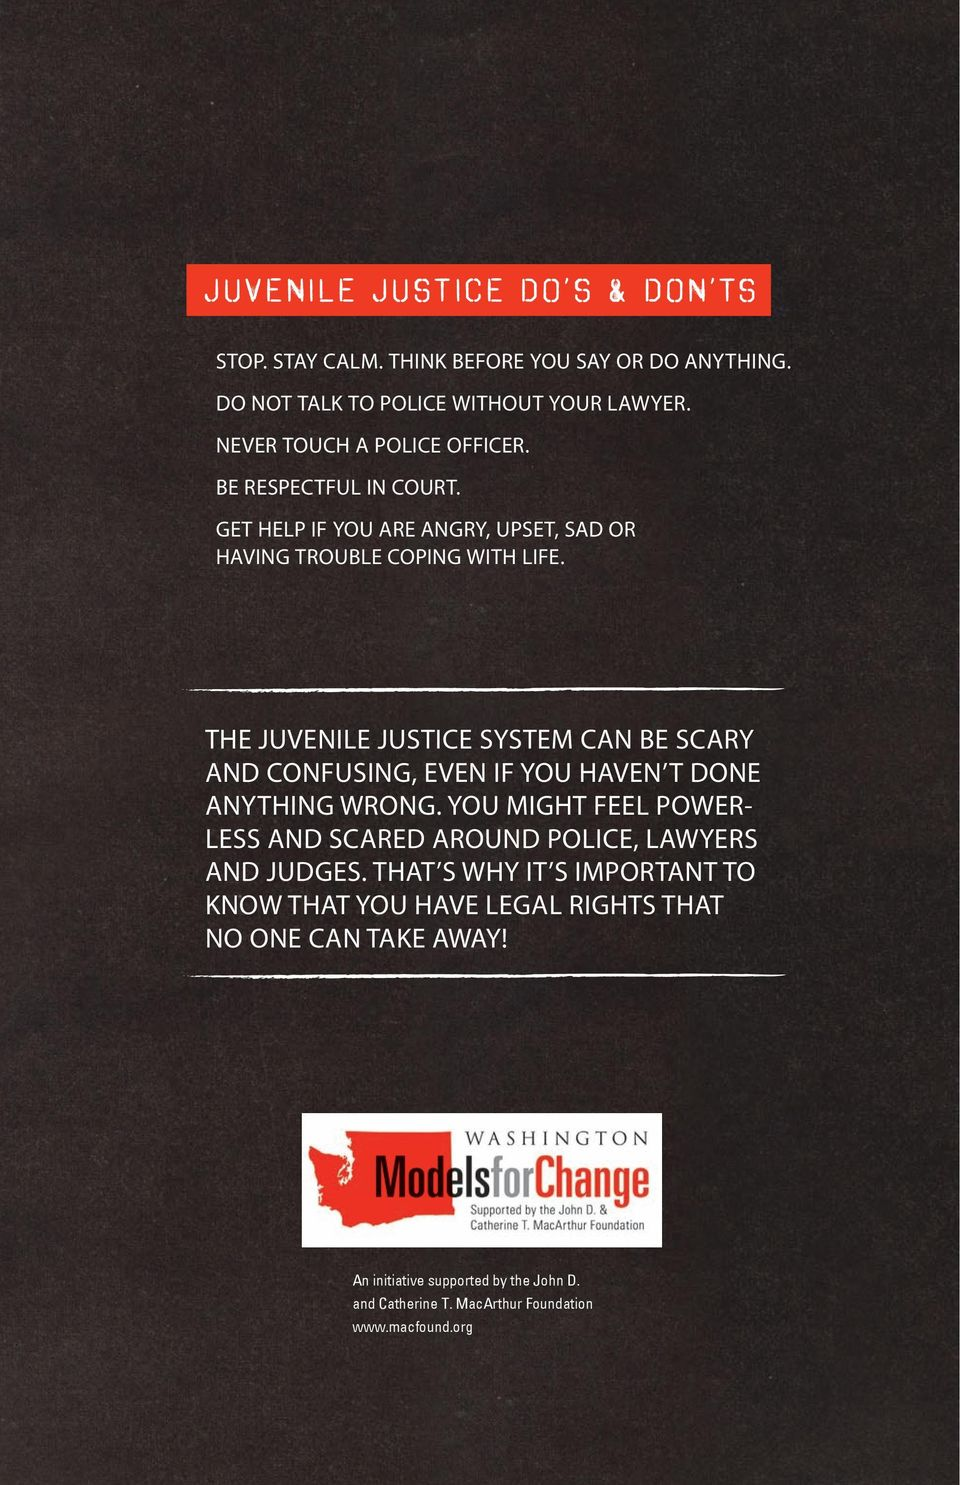 THE JUVENILE JUSTICE SYSTEM CAN BE SCARY AND CONFUSING, EVEN IF YOU HAVEN T DONE ANYTHING WRONG.